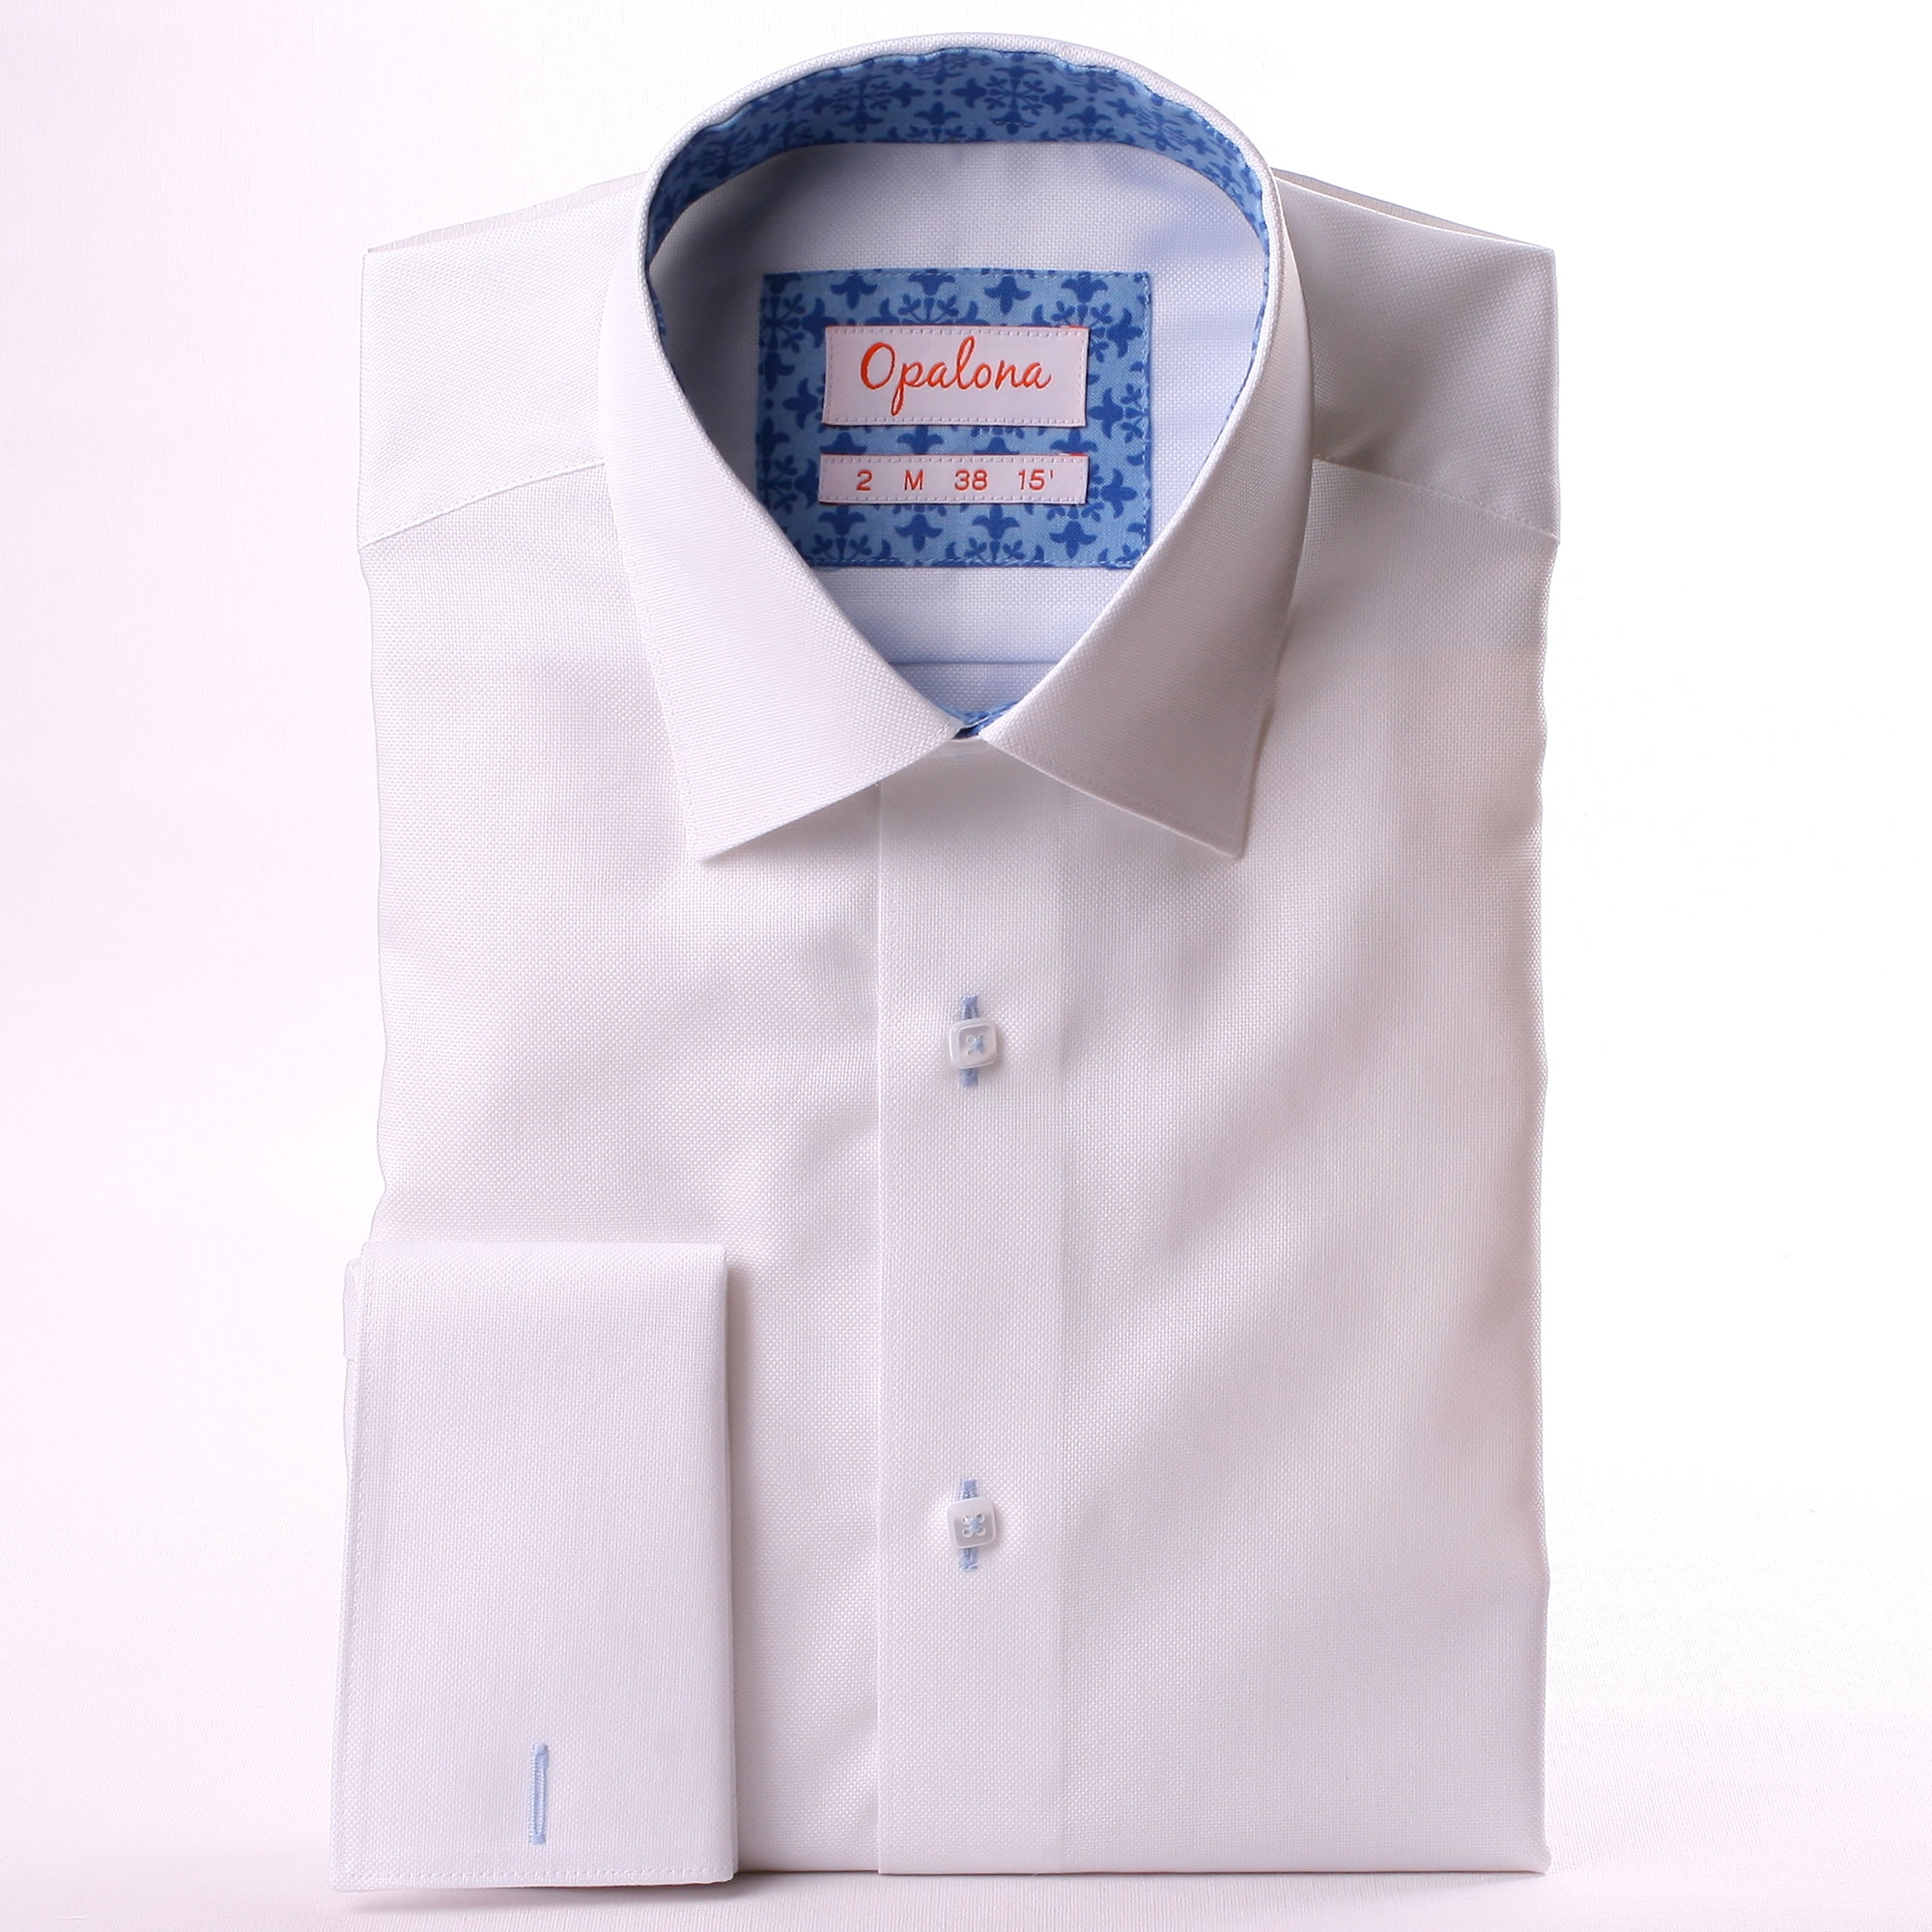 White French Cuff Shirt With Blue Patterns Collar And Cuffs